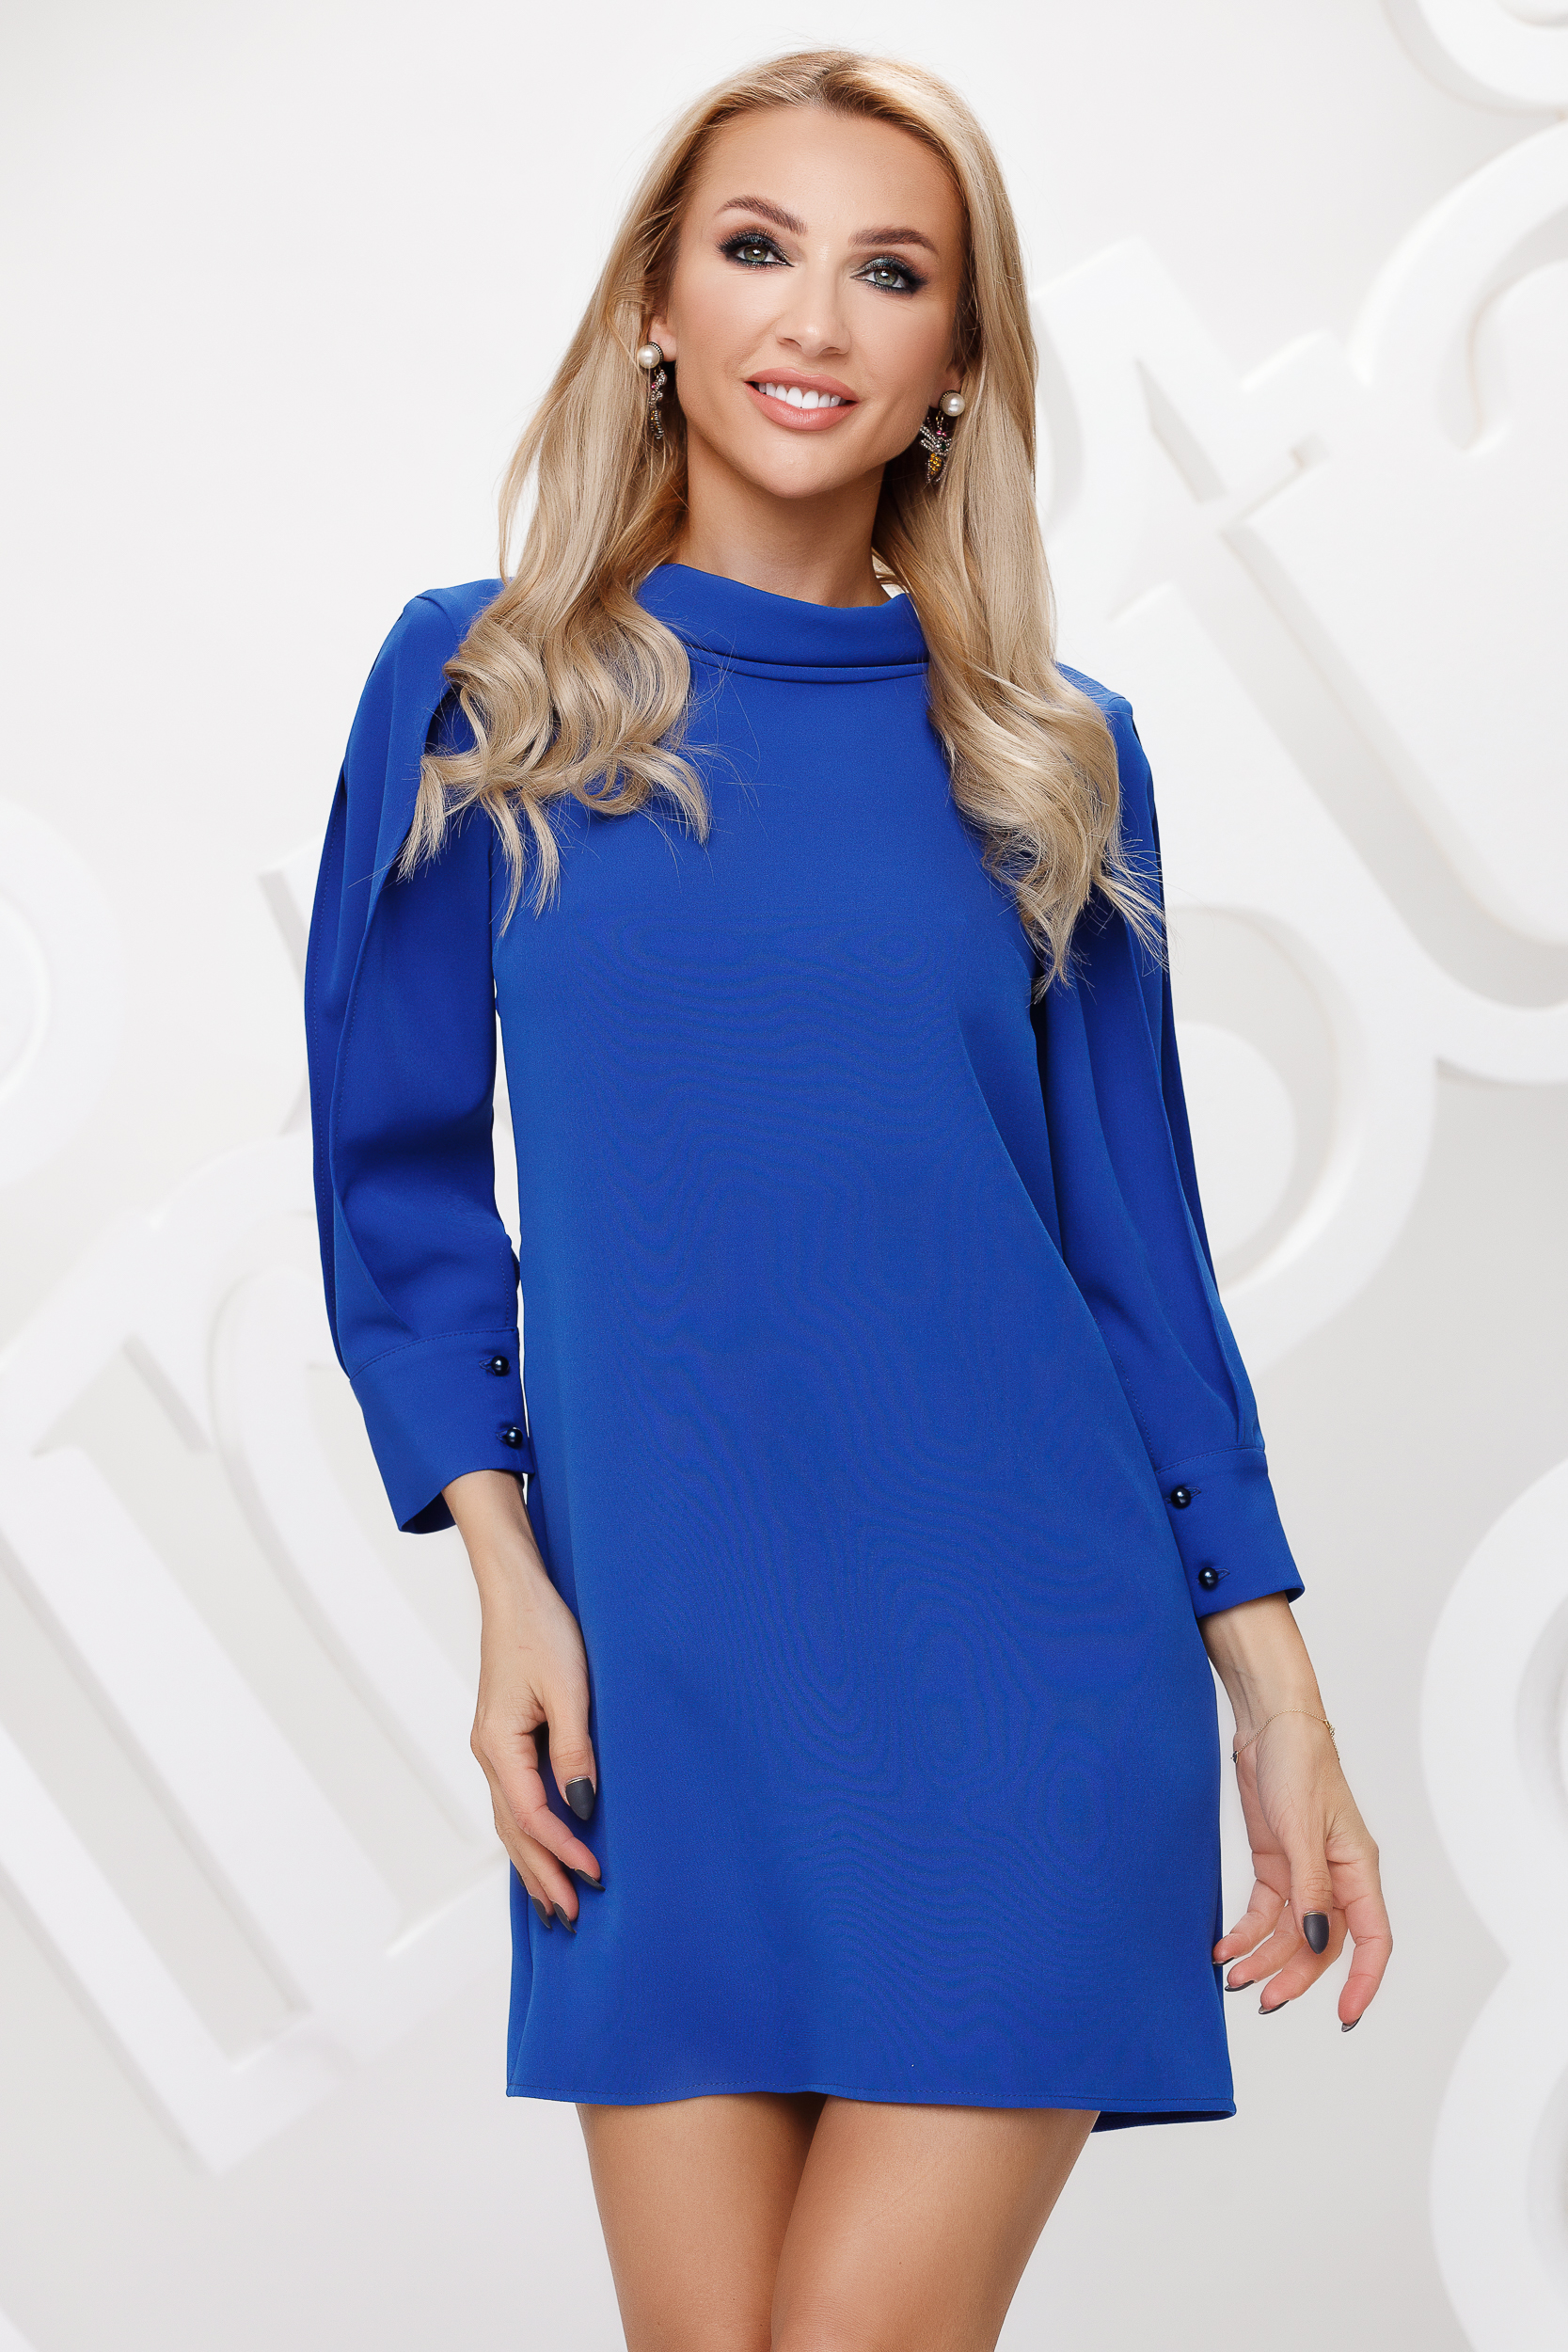 Blue dress short cut straight double collar